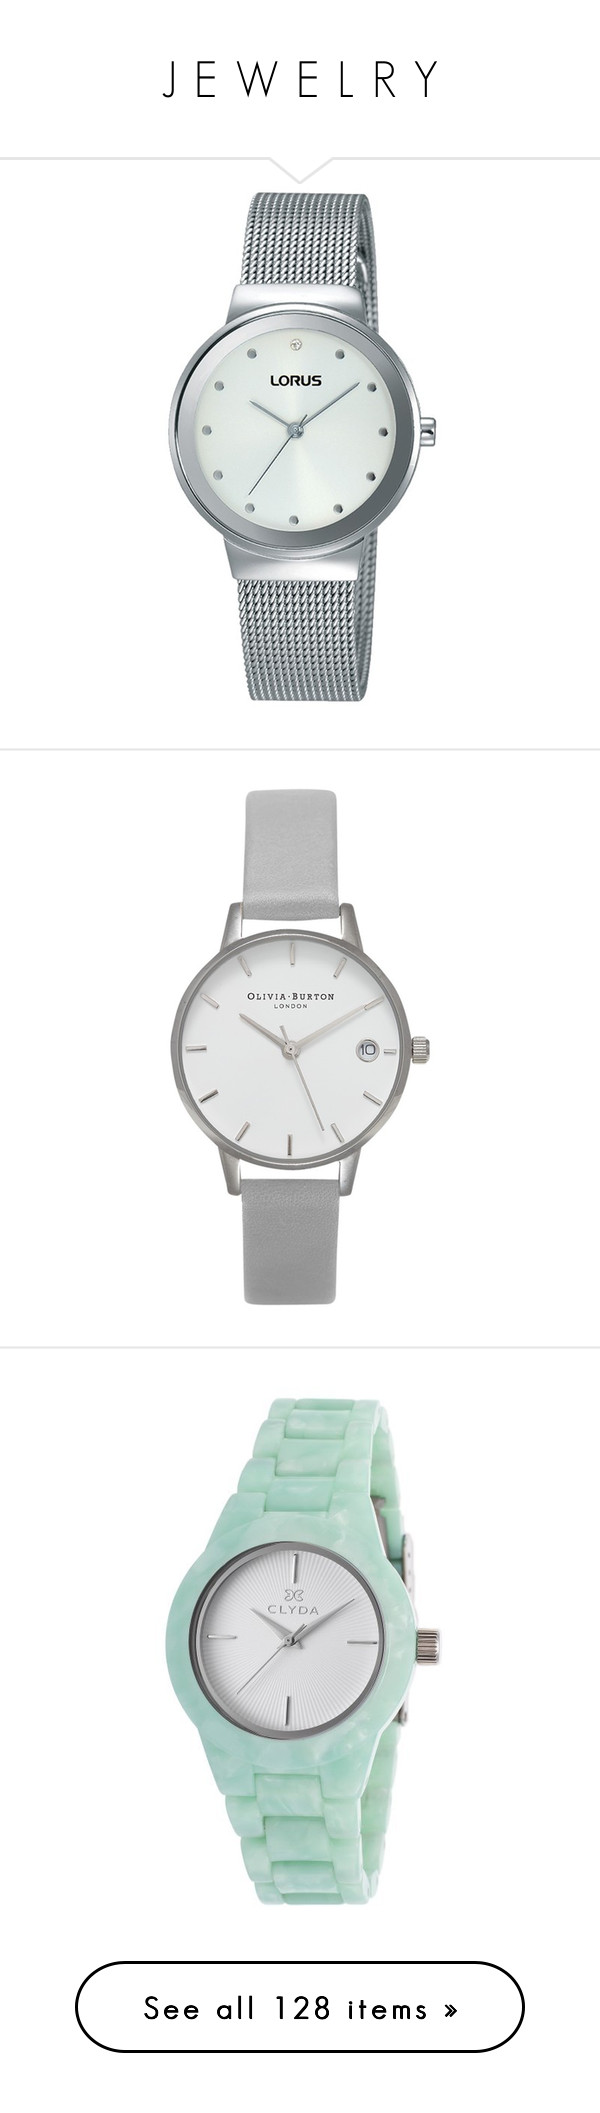 """J E W E L R Y"" by southerncomfort ❤ liked on Polyvore featuring jewelry, watches, silver wrist watch, white faced watches, clear watches, silver jewelry, white strap watches, polish jewelry, buckle jewelry and grey watches"